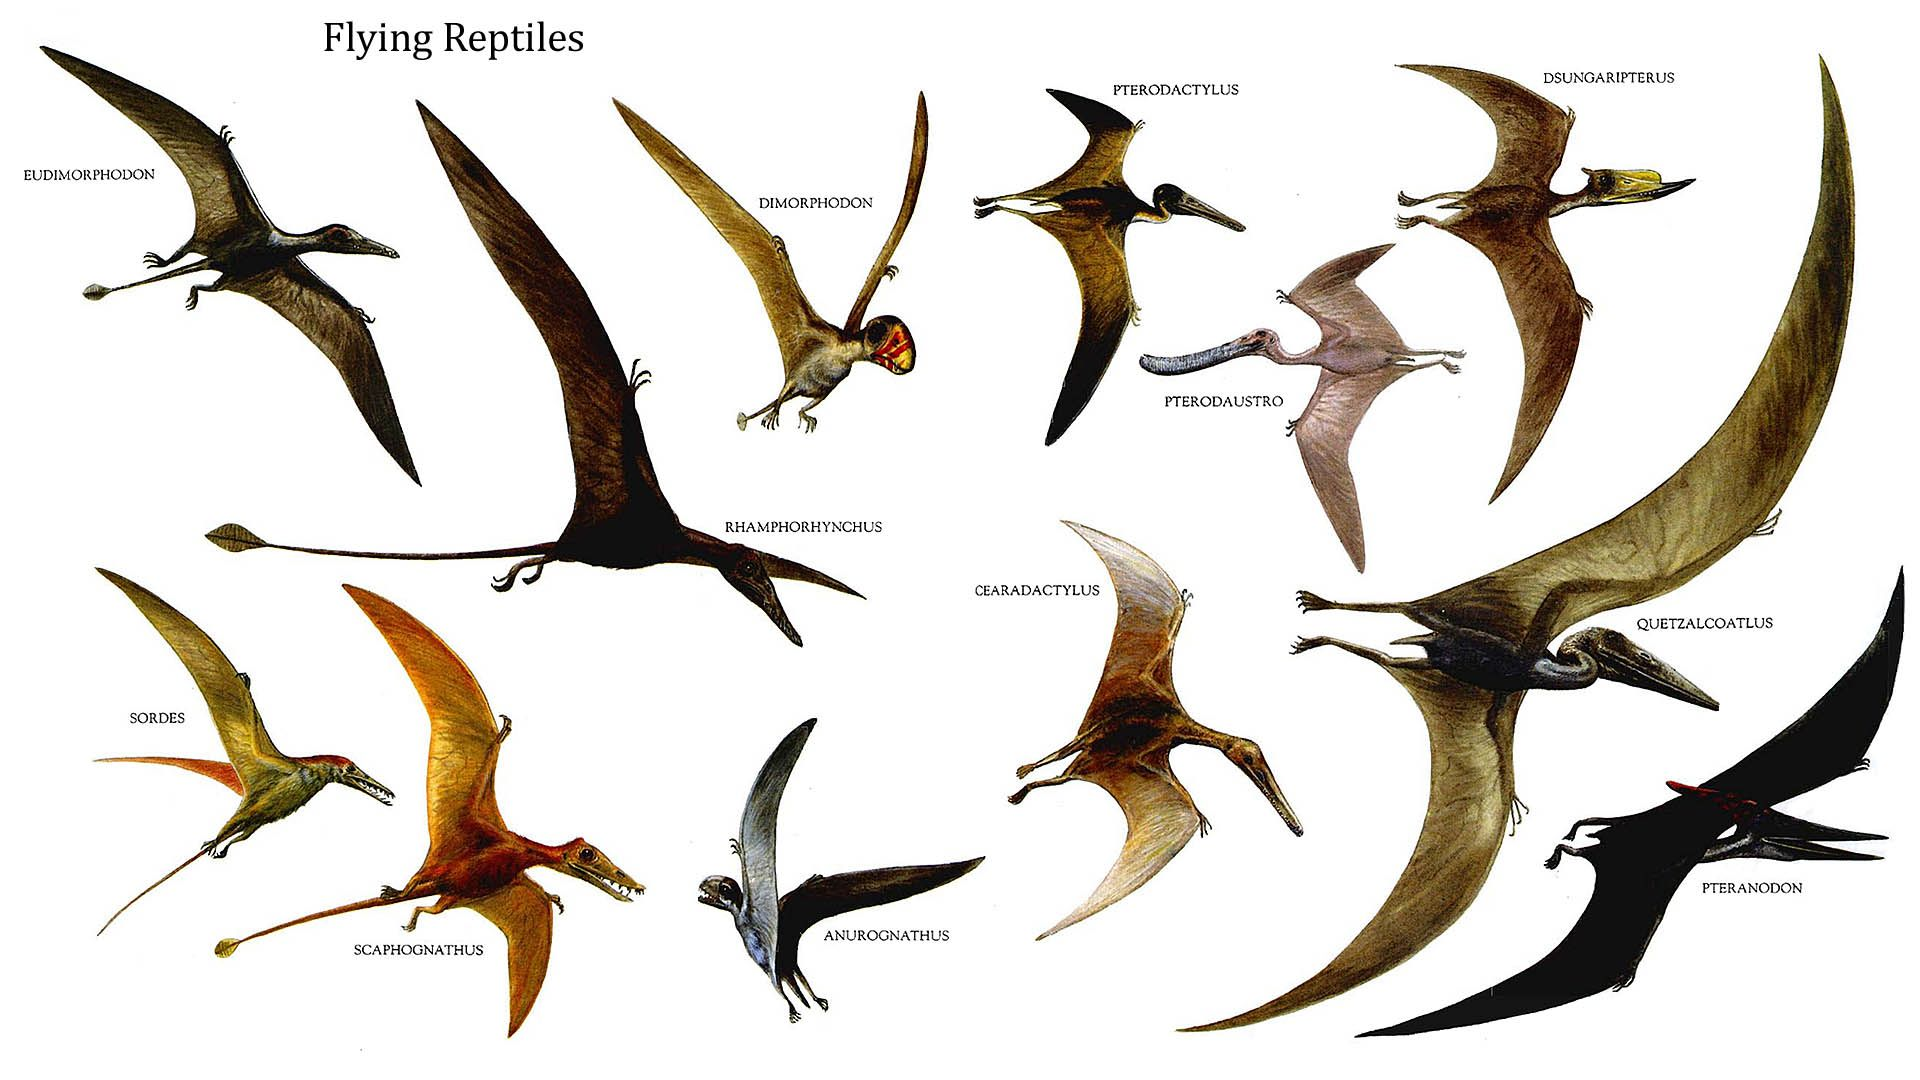 Reptiles bird flying dinosaurs wallpaper background